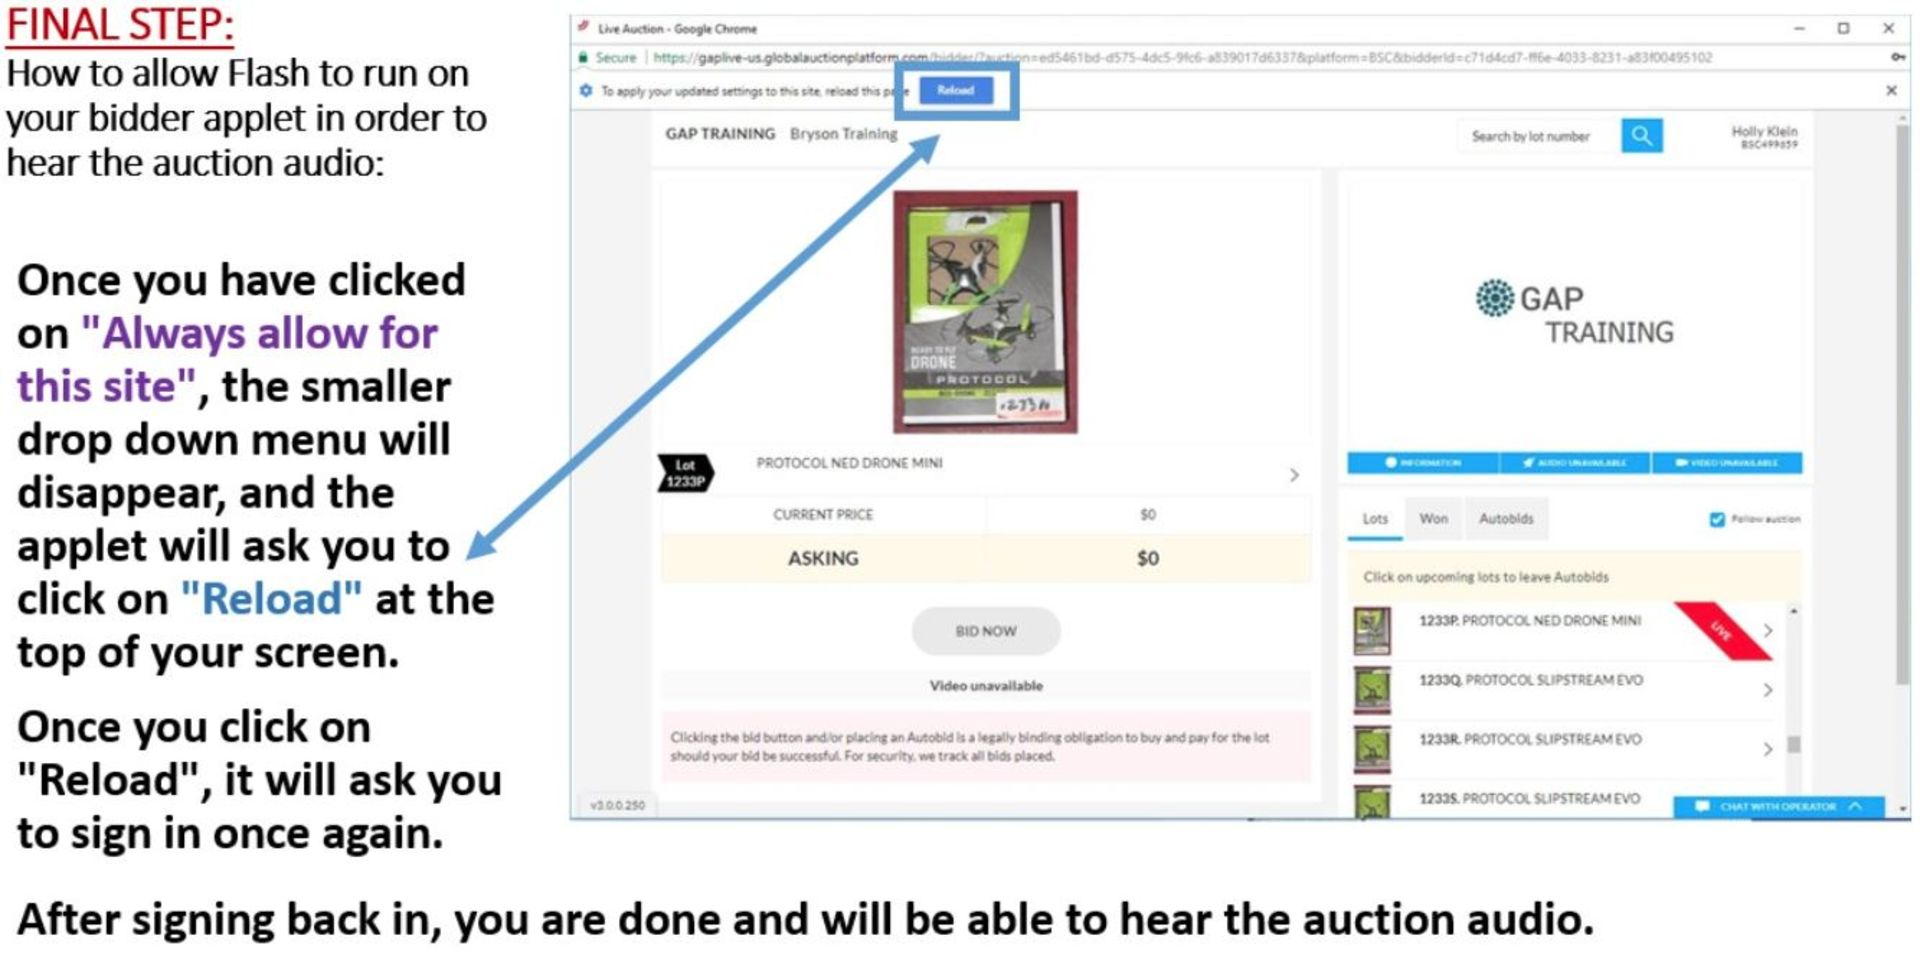 CHROME USERS: HOW TO ALLOW FLASH IN ORDER TO HEAR AUDIO - STEP 4